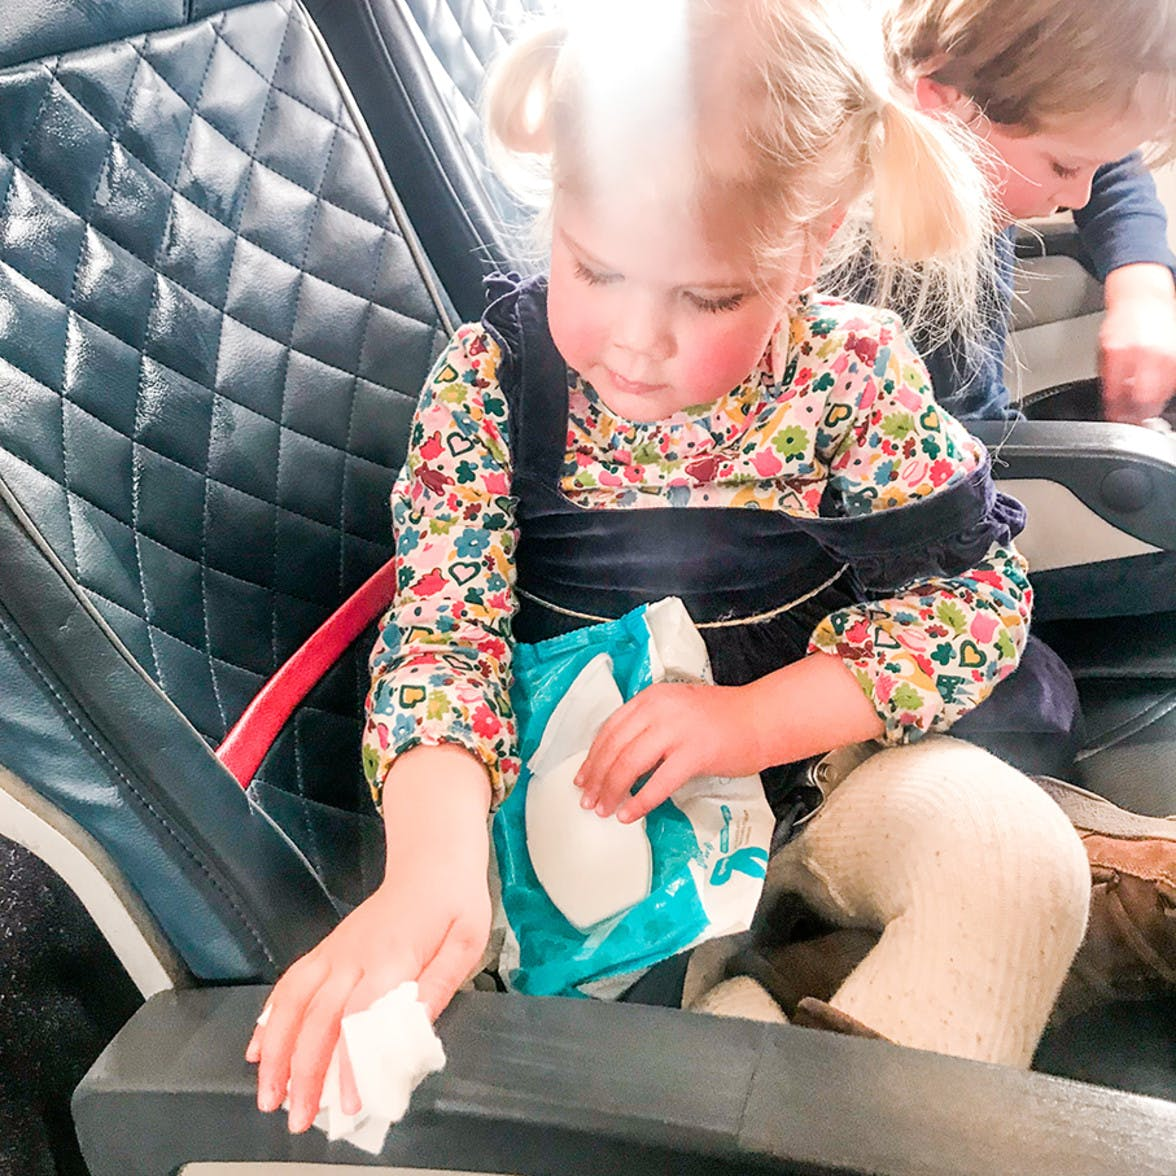 Toddler wiping down an air plane seat with wet wipes